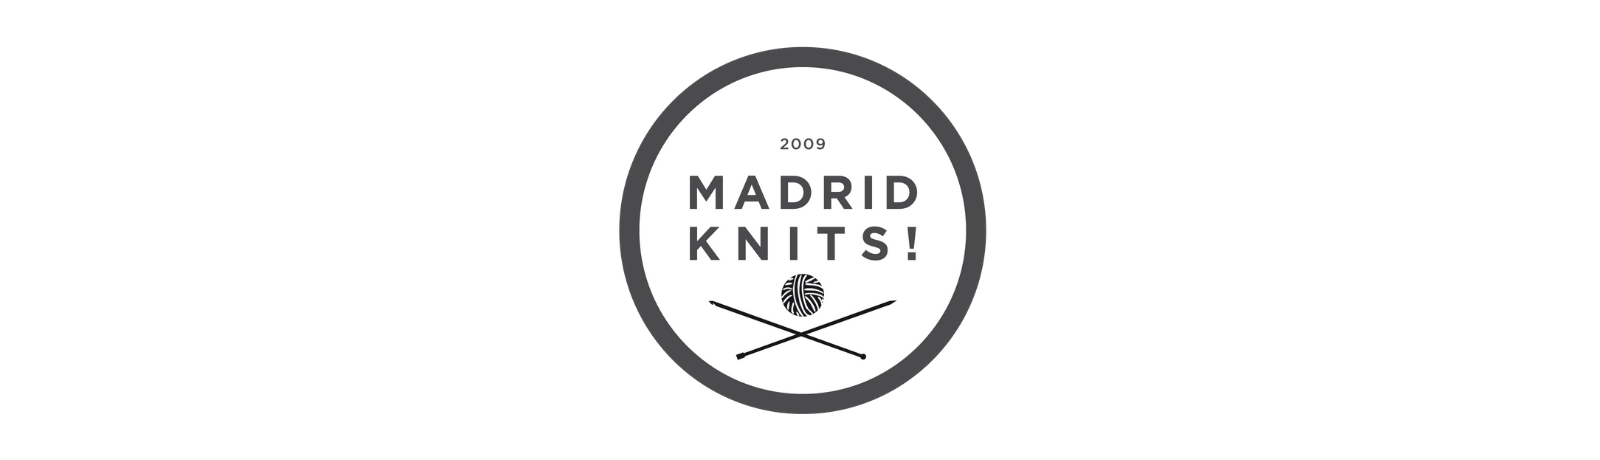 Madrid Knits!